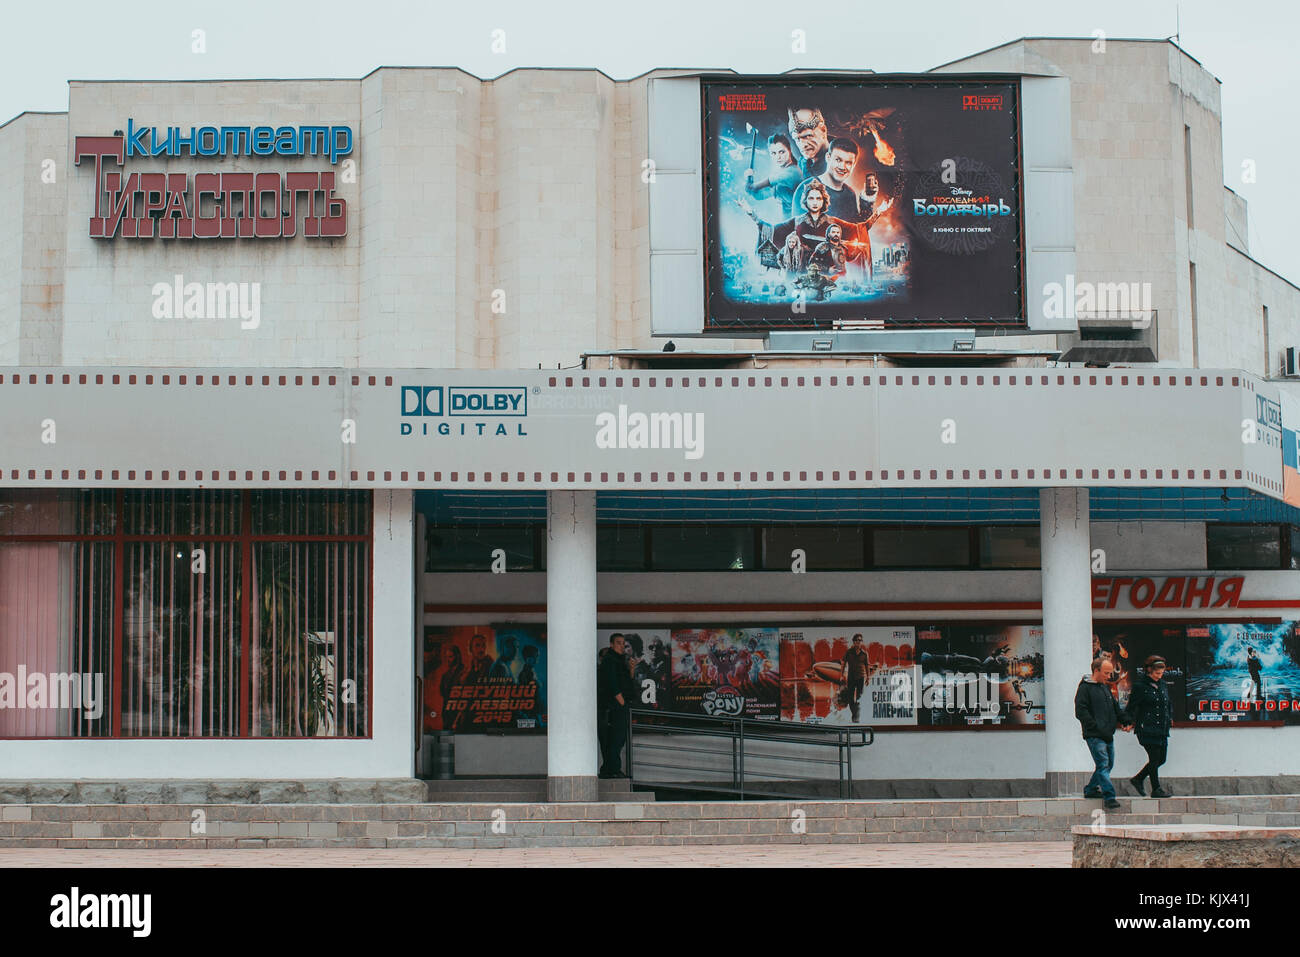 Posters promoting American and Russian films Blade Runner 2049 and The Last Bogatyr on a cinema in the self-declared - Stock Image